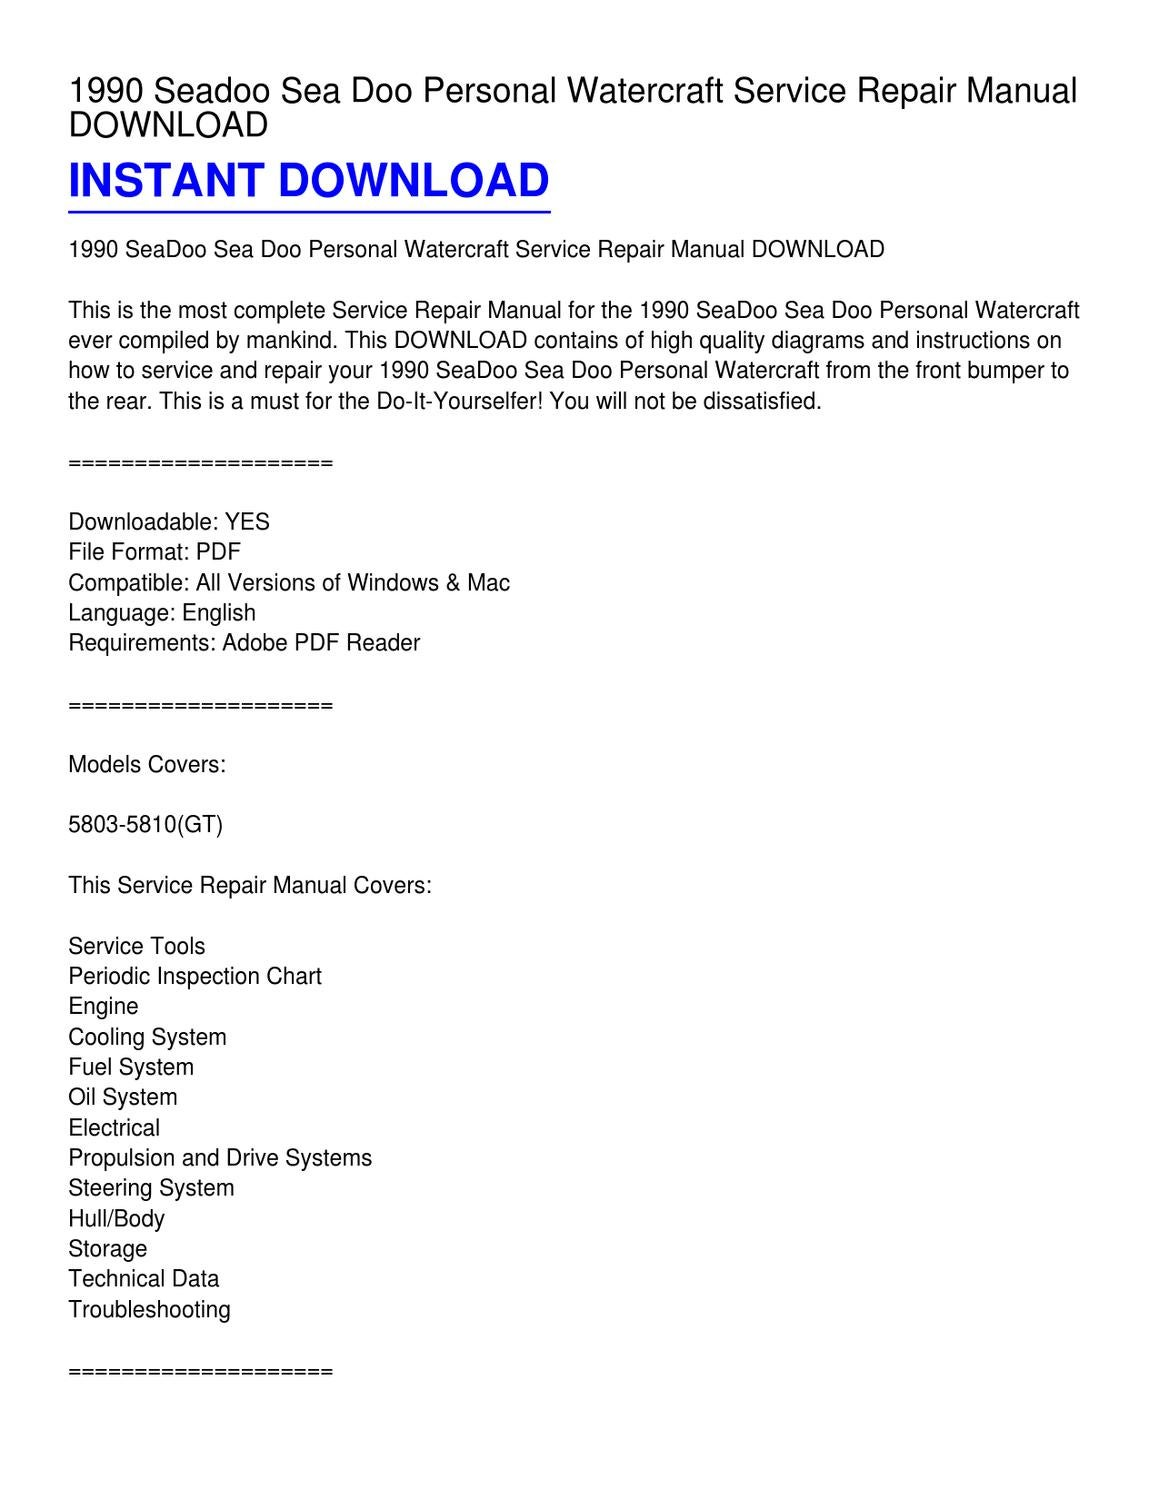 1990 Seadoo Sea Doo Personal Watercraft Service Repair Manual DOWNLOAD by  Lester Church - issuu